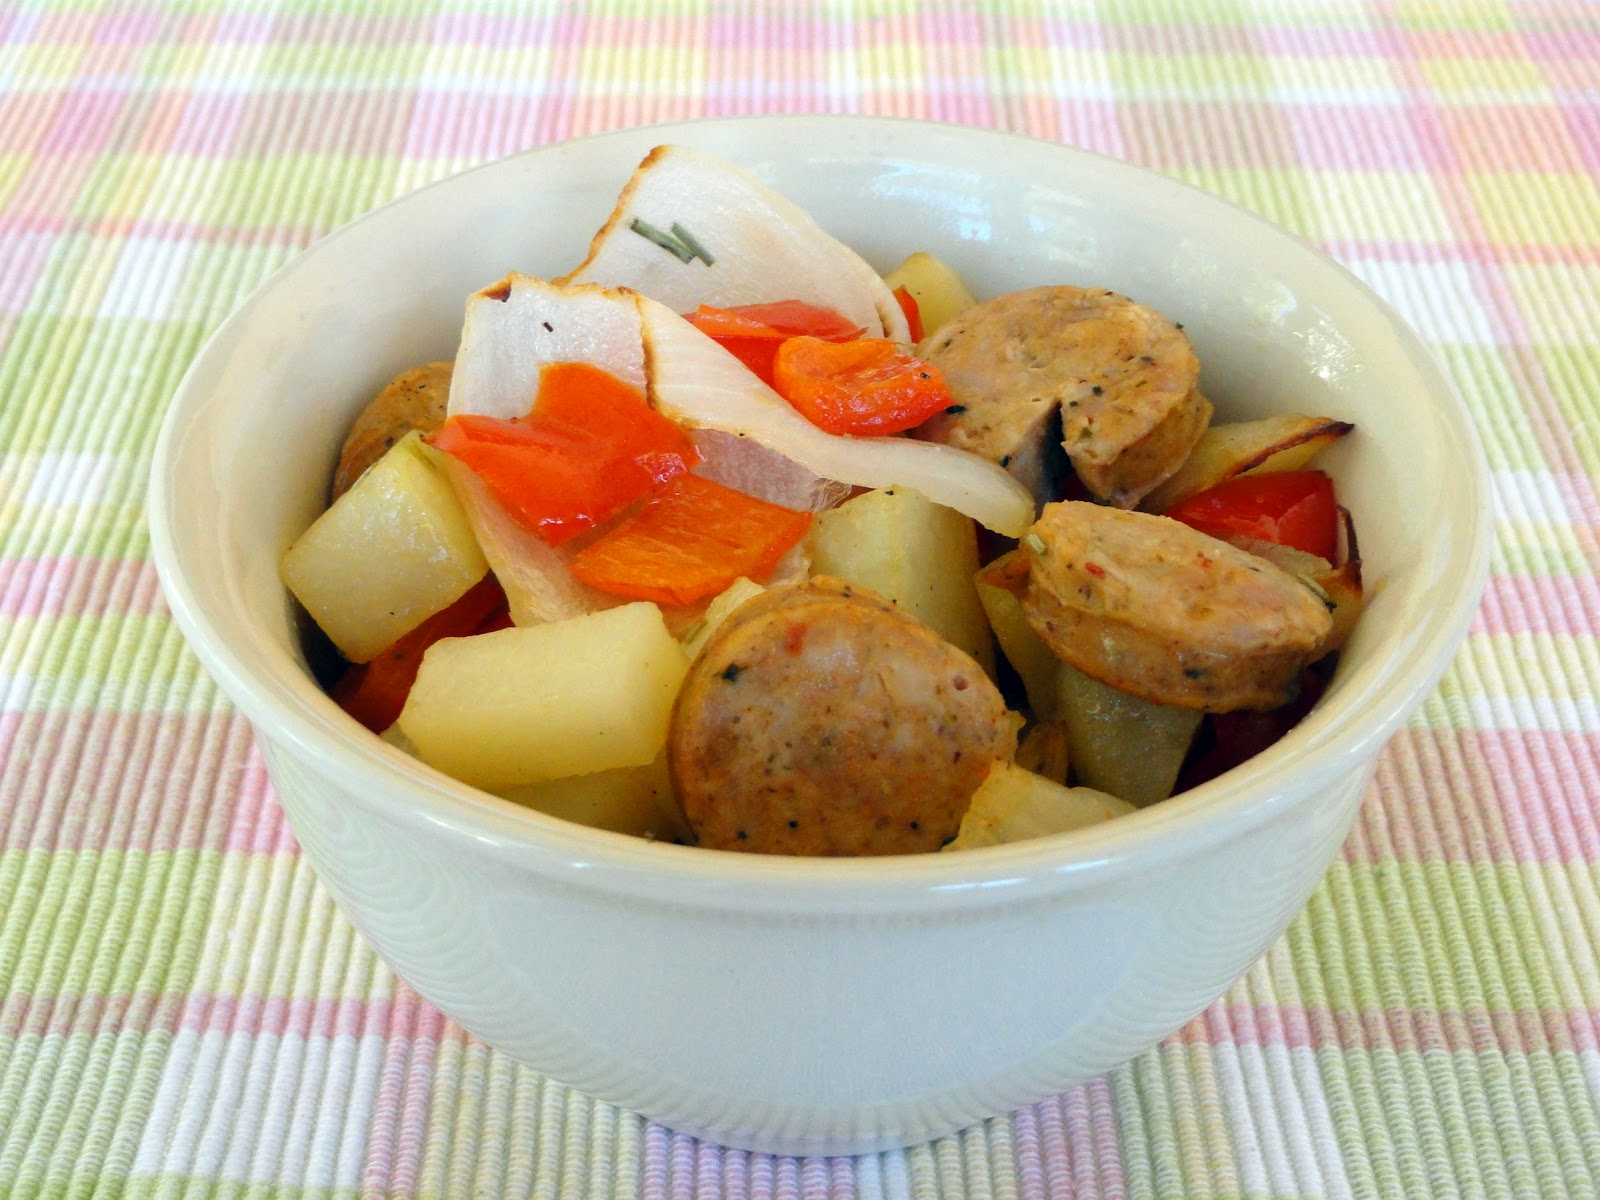 As Good As Gluten: Roasted Potatoes, Chicken Sausage and Peppers